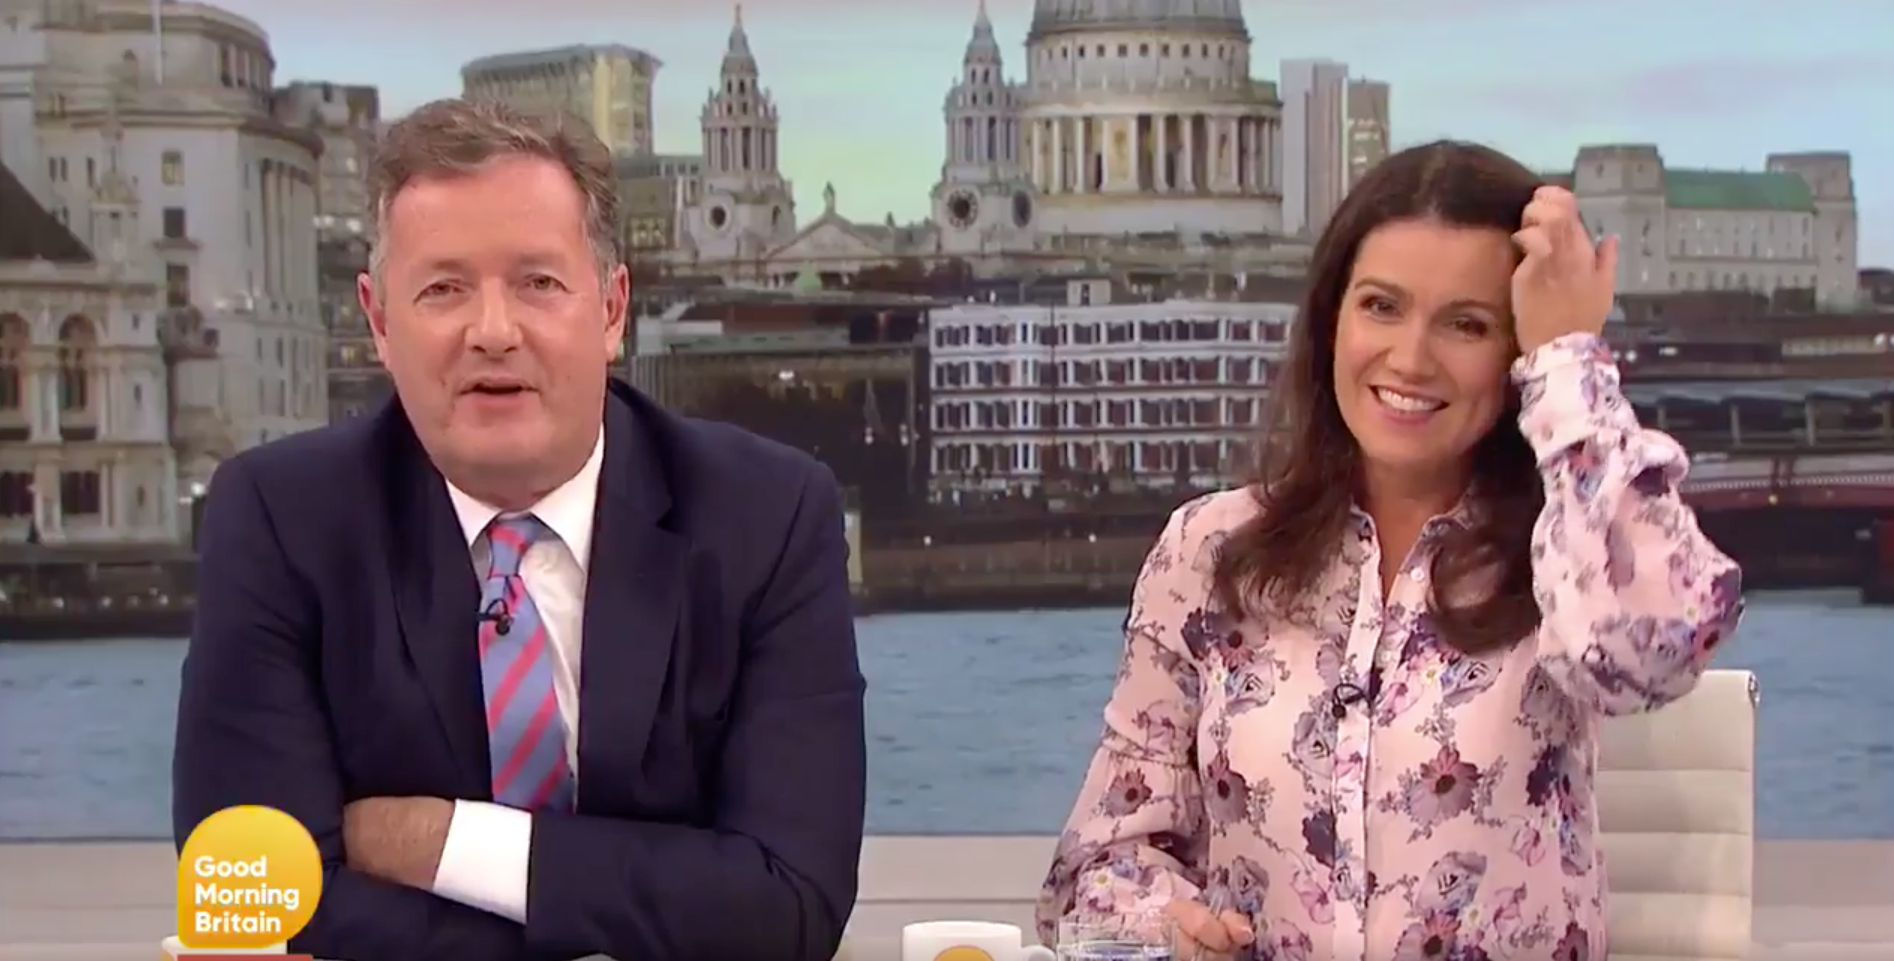 'Good Morning Britain': Overheating Causes 'Chaos' Behind The